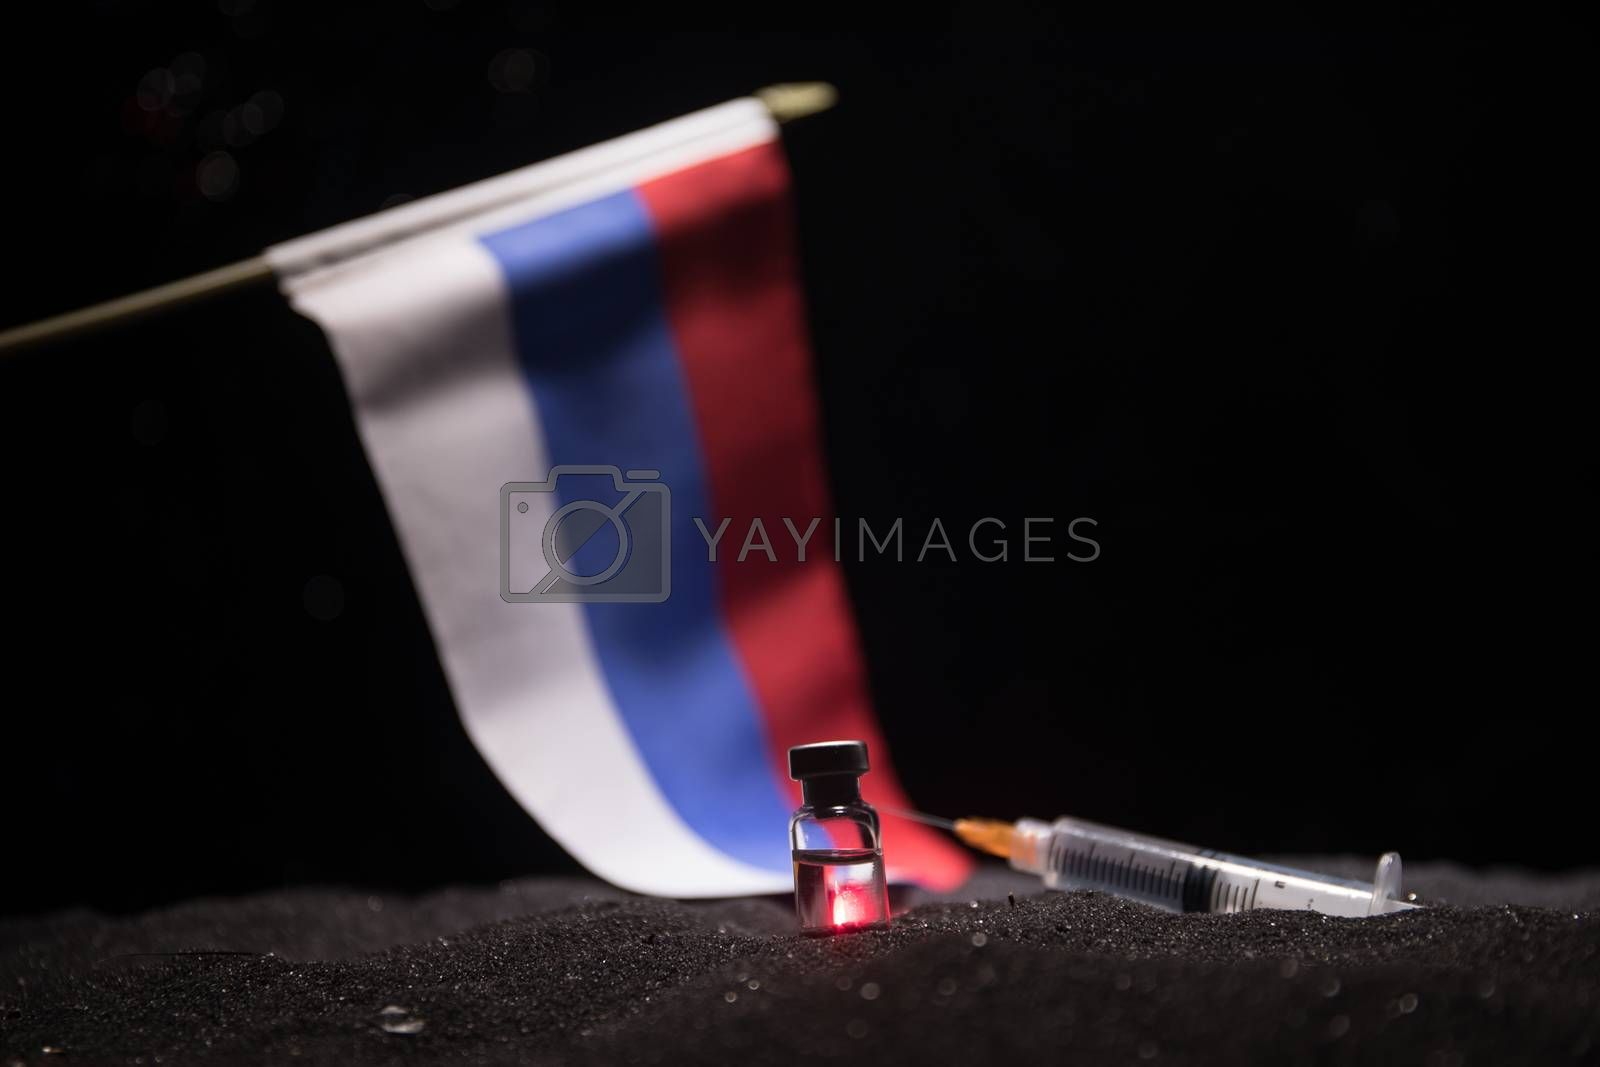 World Corona virus attack concept. Concept of fight against virus, danger and public health risk disease. National flags on dark background. Creative artwork decoration. Selective focus